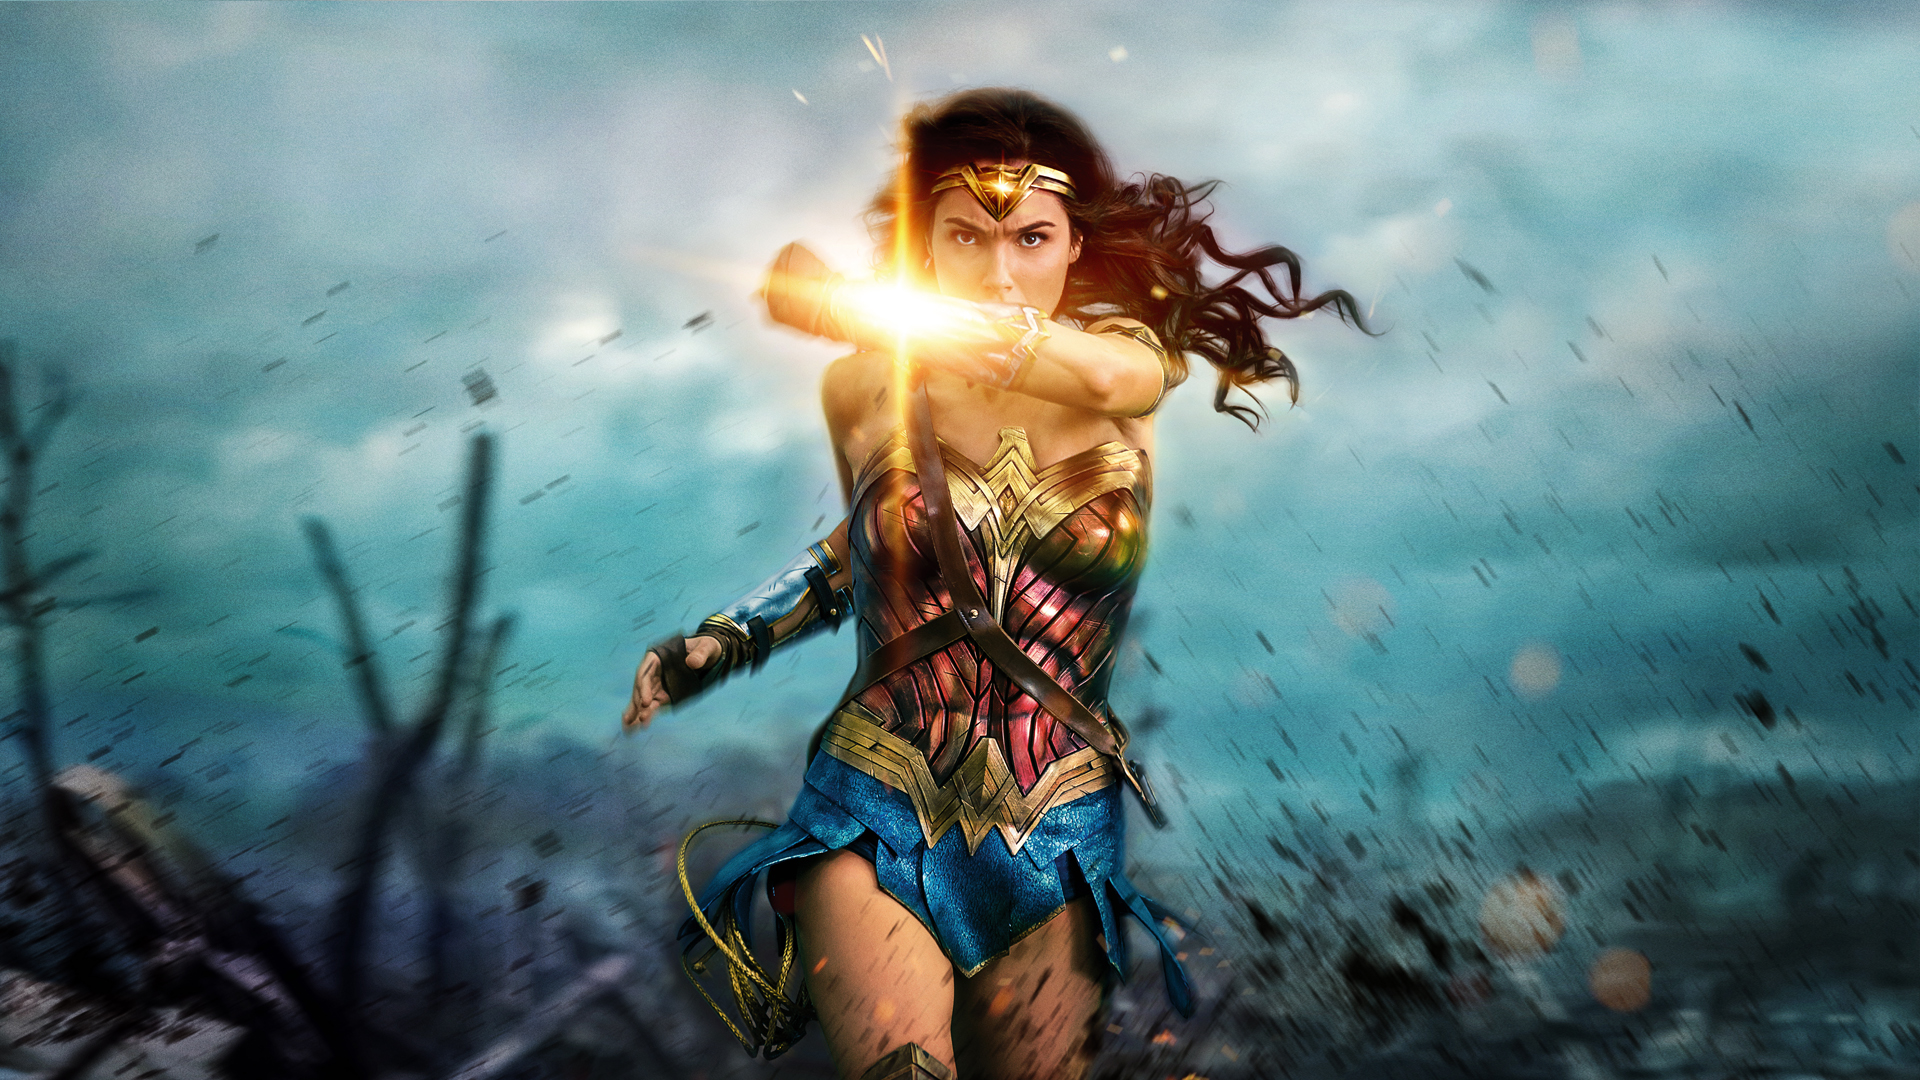 Wonder Woman Wallpaper 1920x1080 by sachso74 on DeviantArt